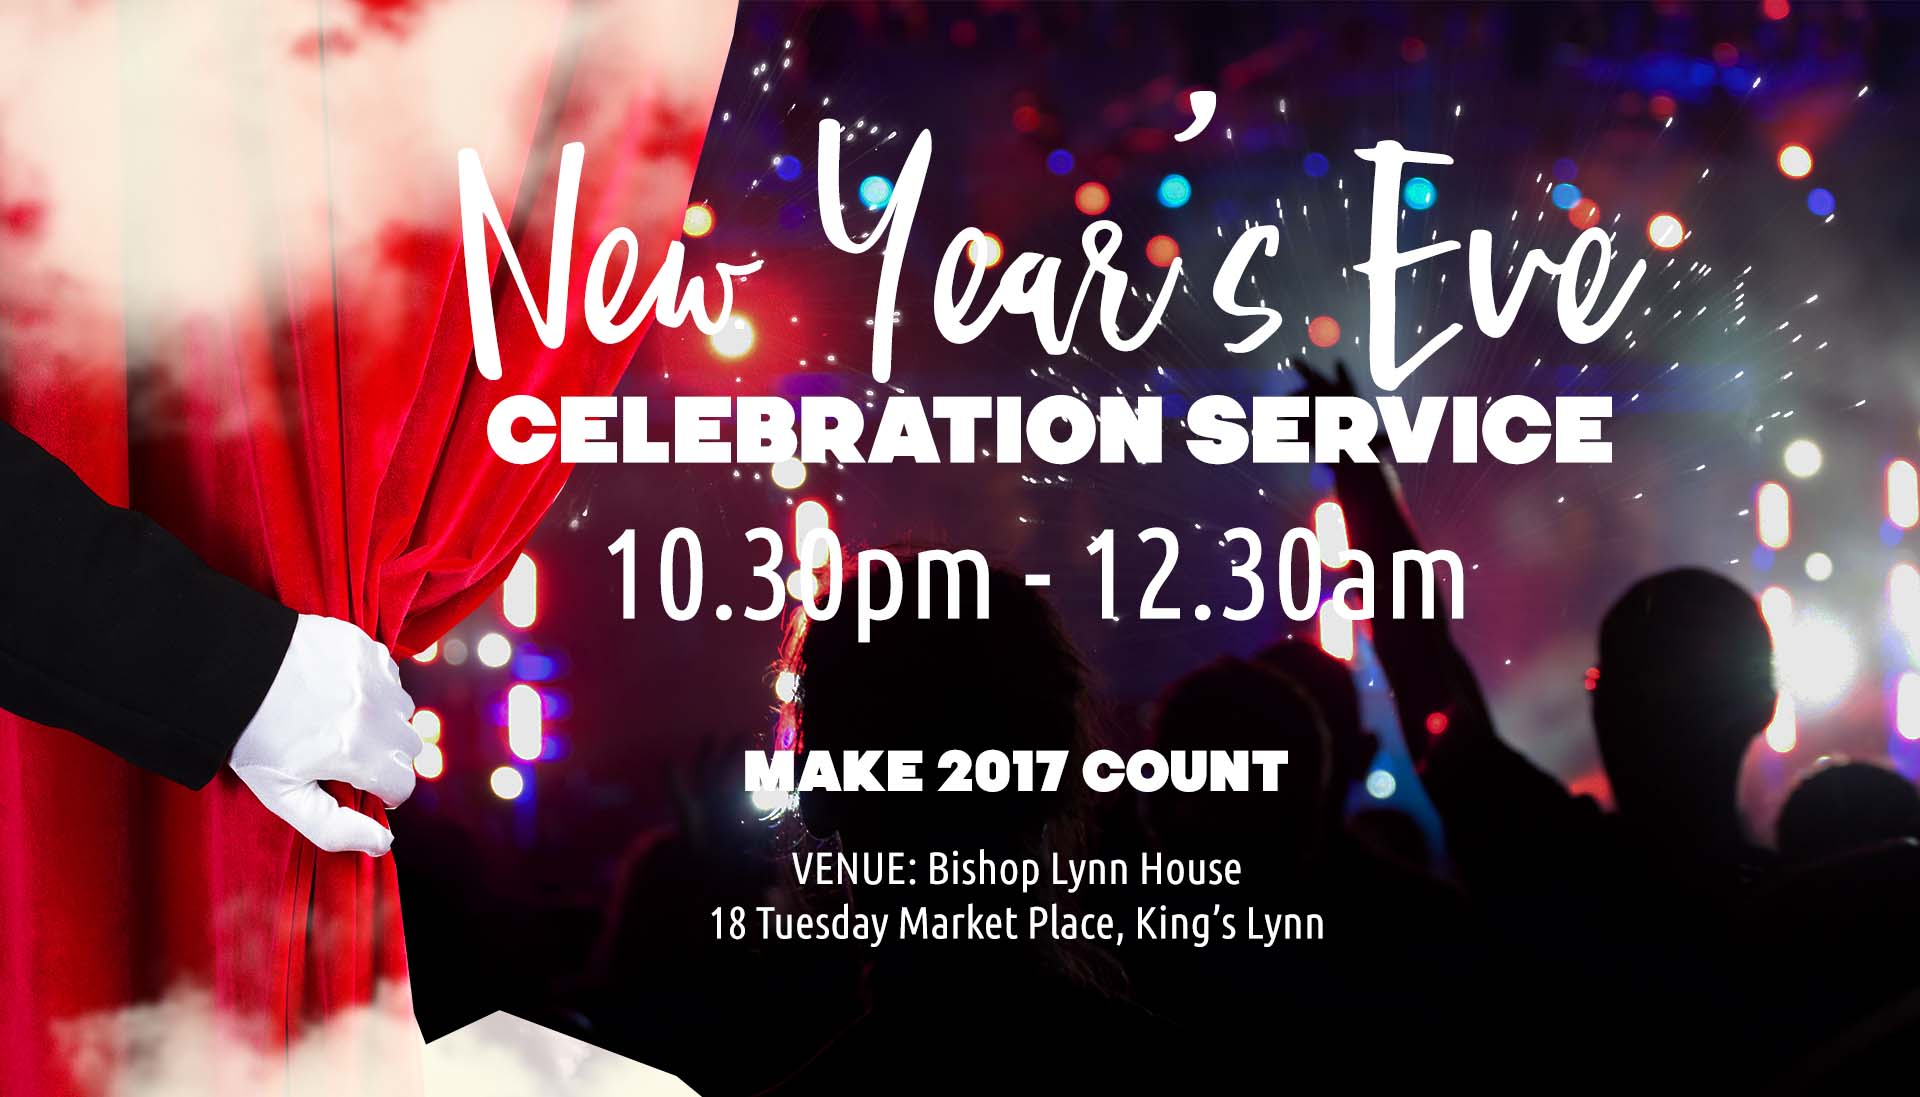 New Year's Eve Celebration Service